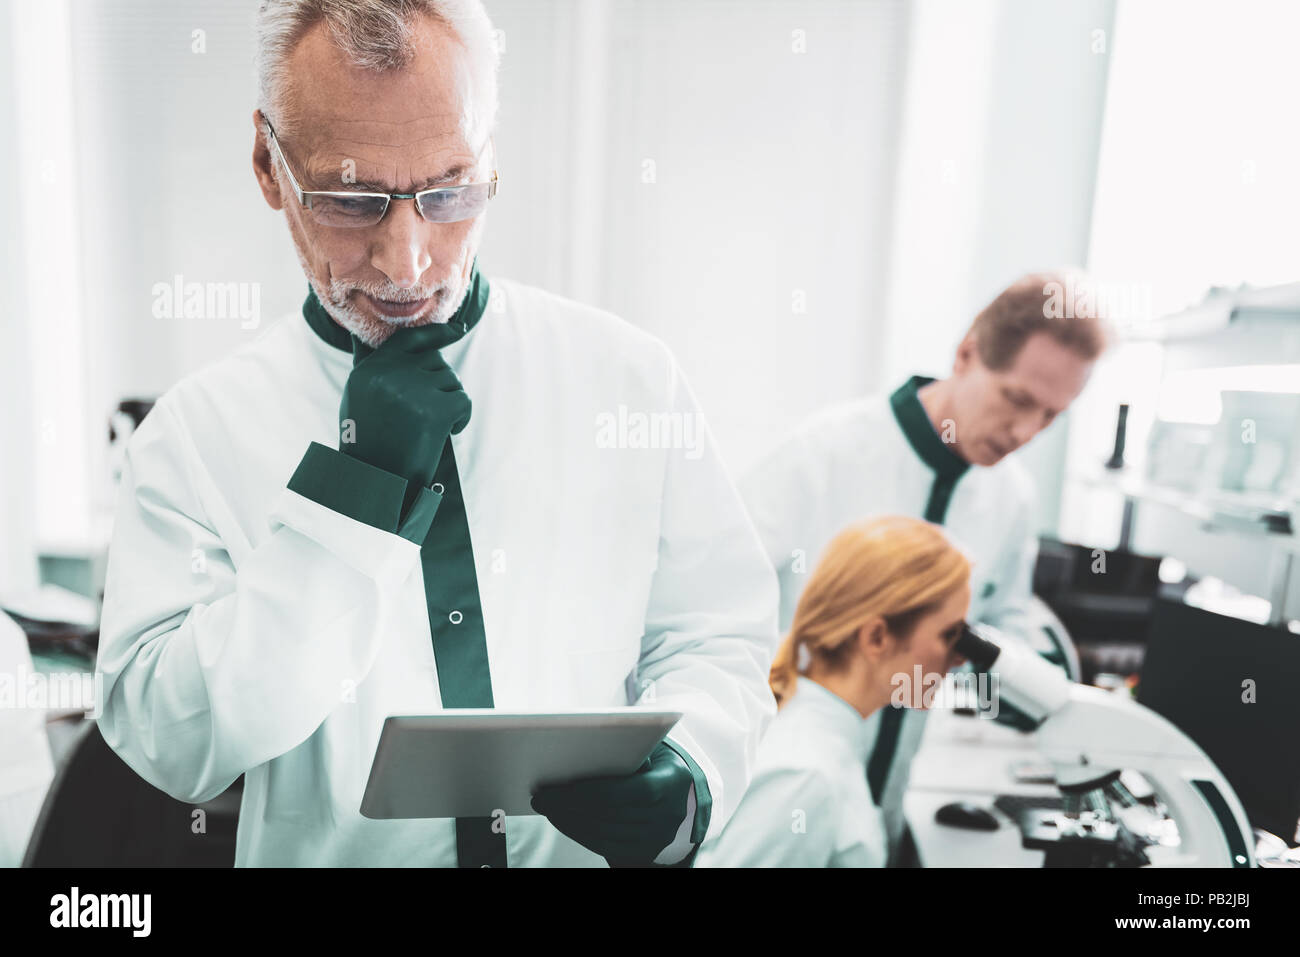 Chemist wearing glasses feeling thoughtful at work - Stock Image